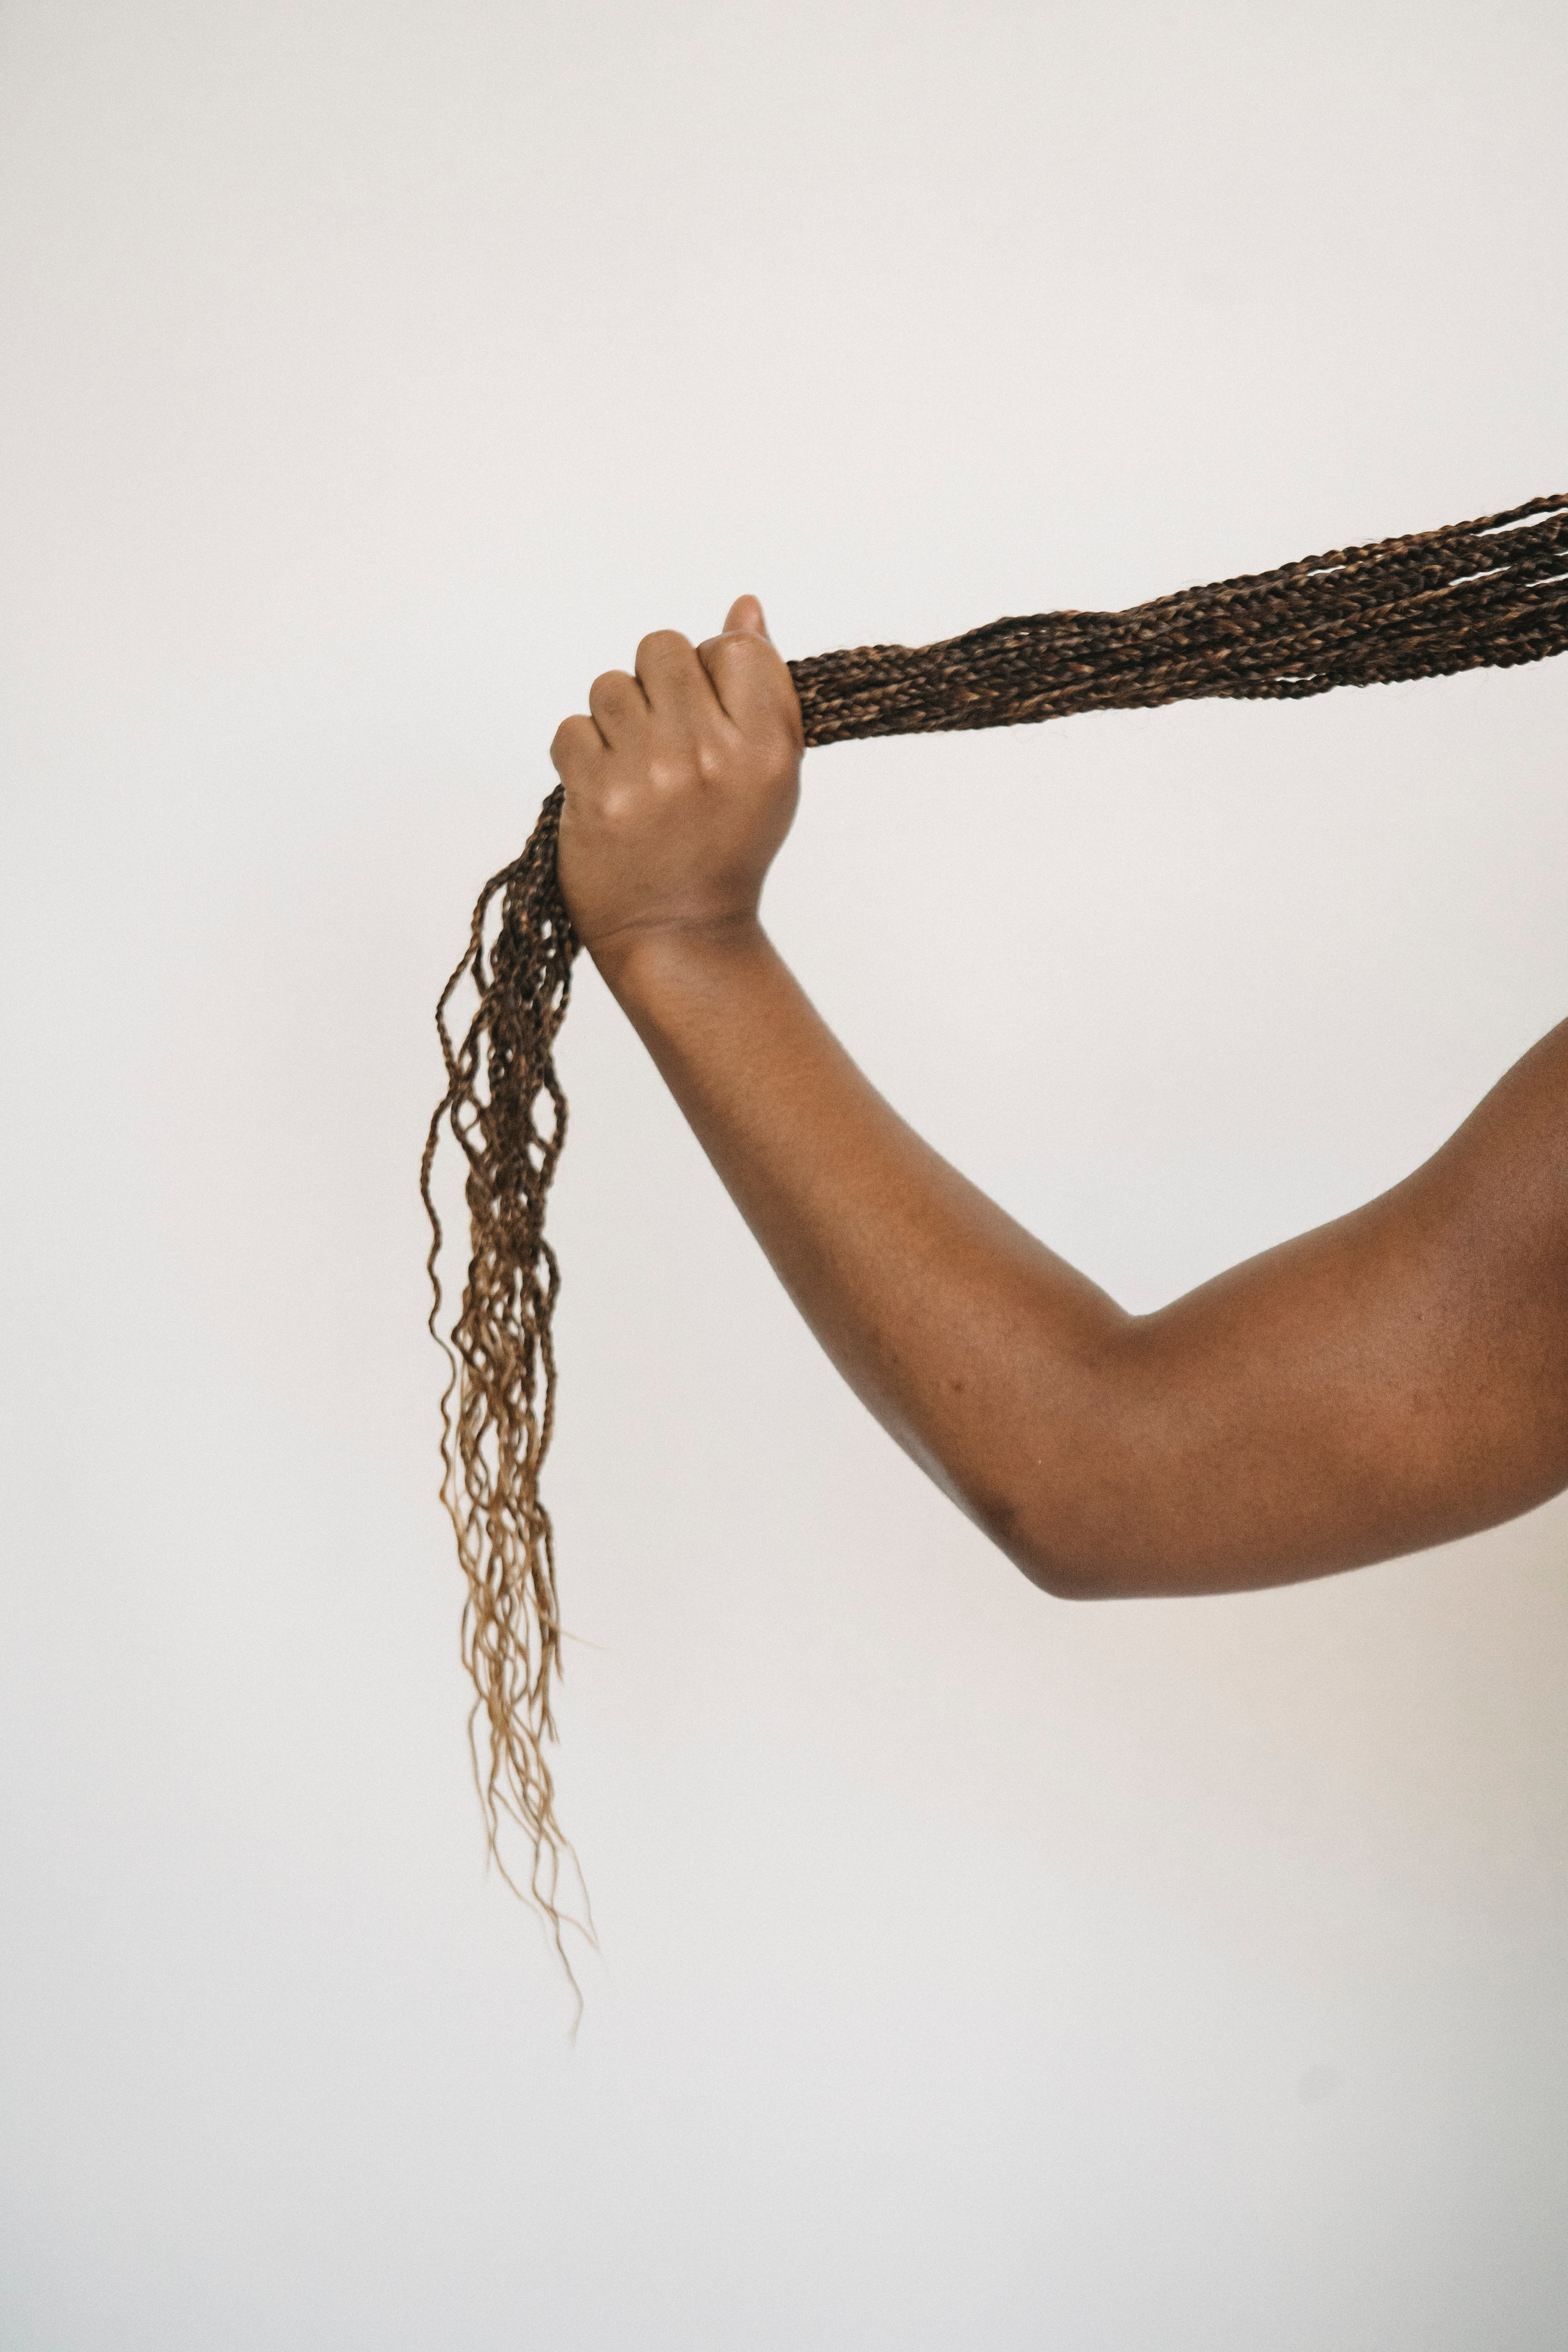 A hand holding out box braids. Photo courtesy of Armin Rimoldi from Pexels.